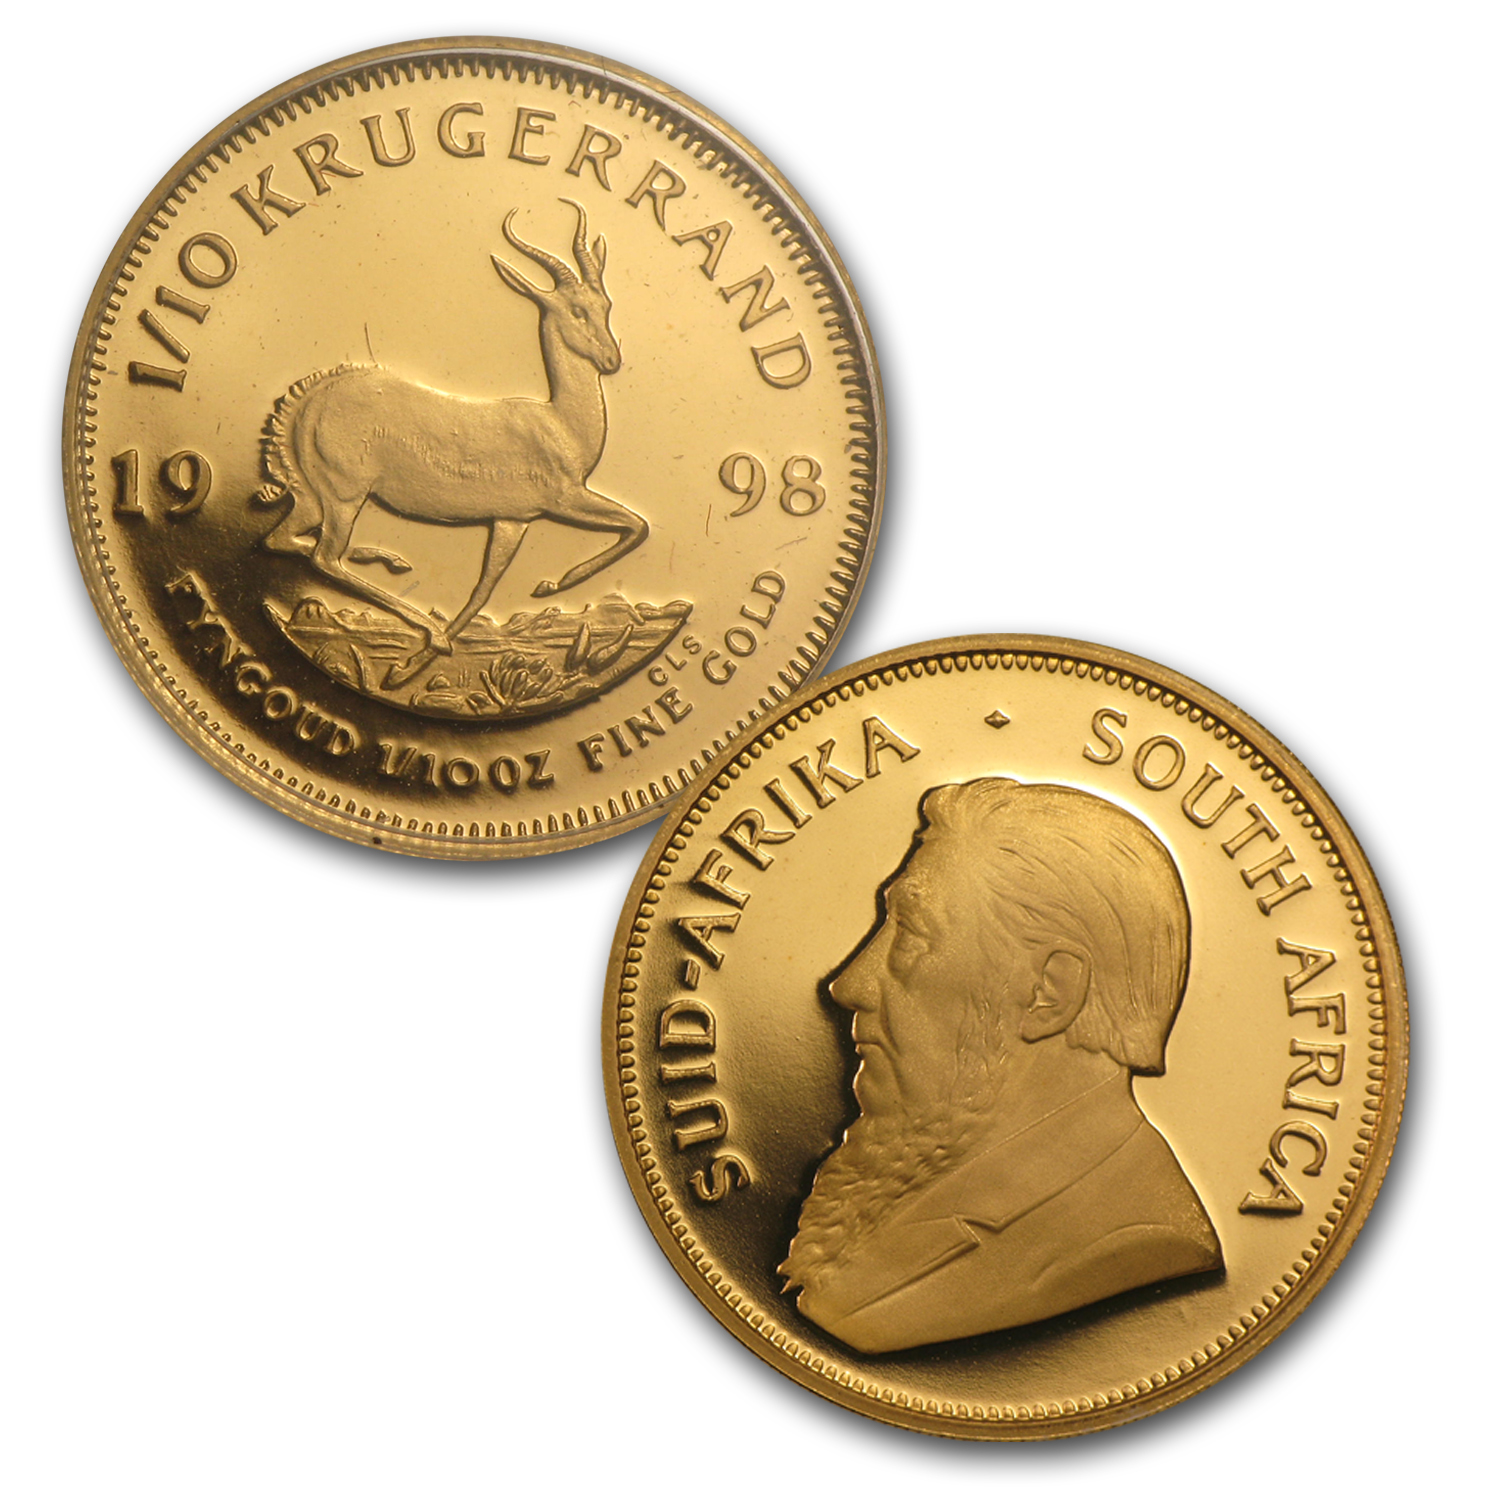 1998 South Africa 5-Pc Gold Krugerrand DeBeers Proof Set